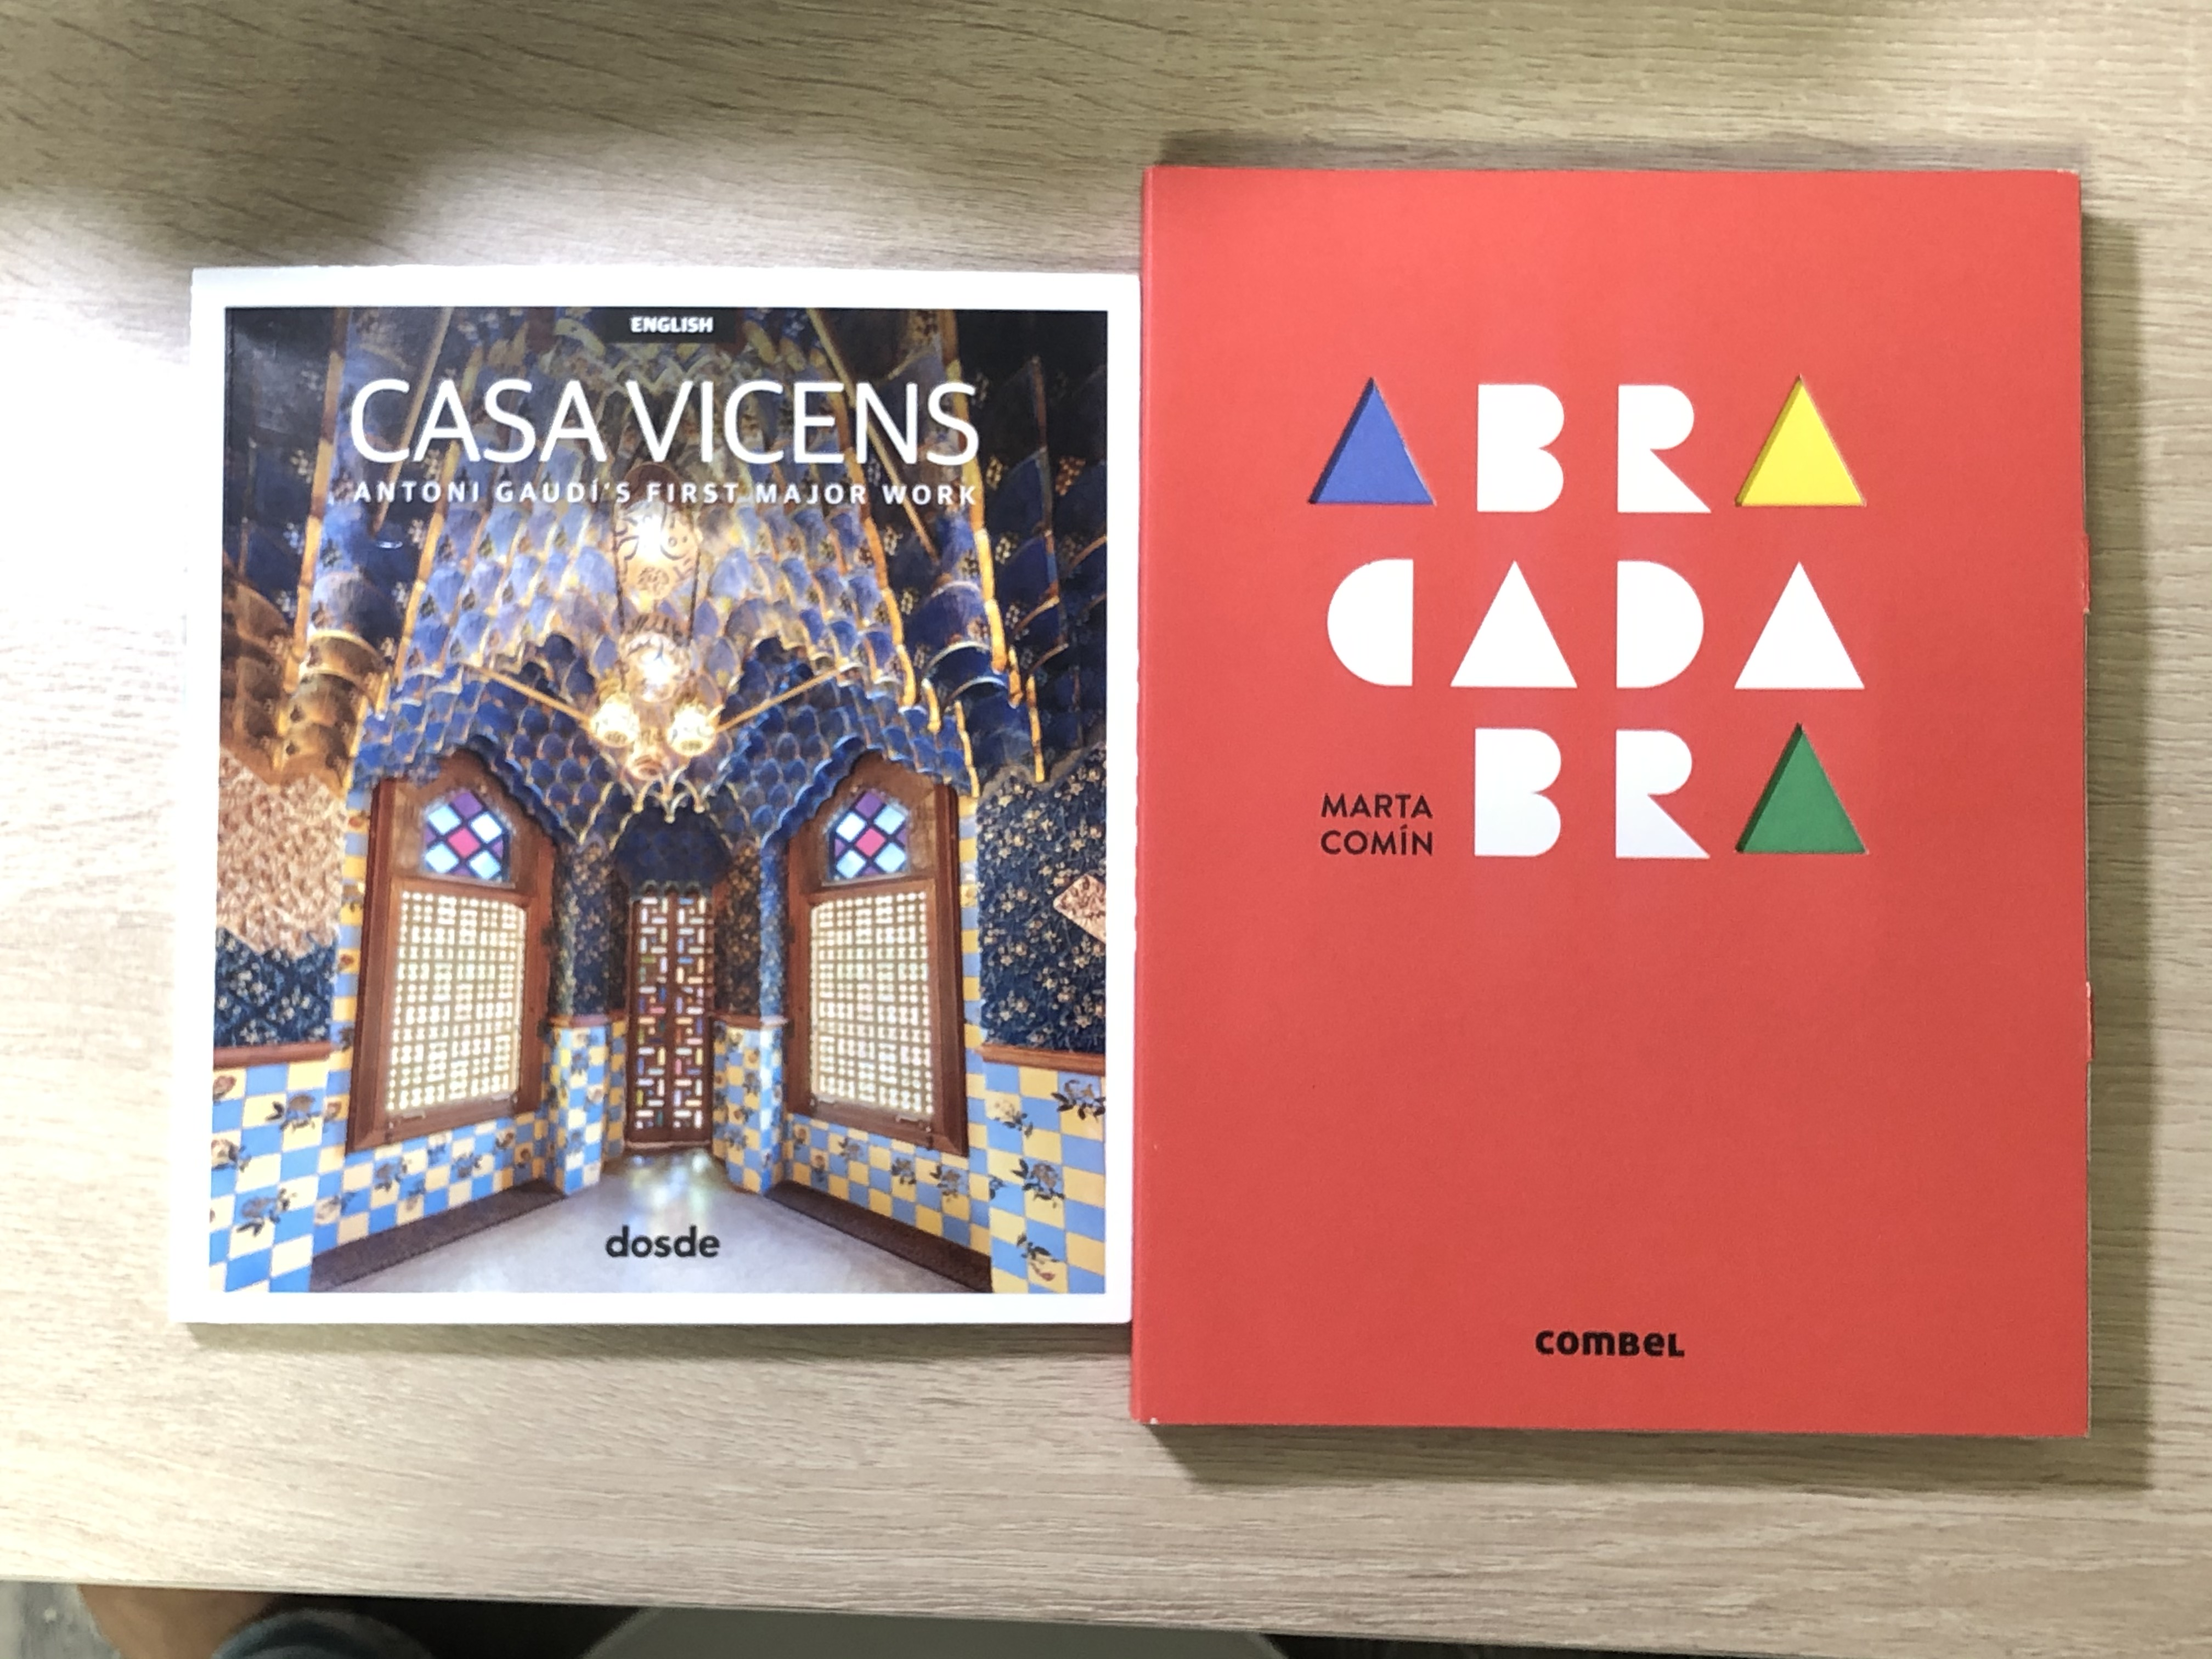 Two new books from Spain. Fun and inspiring.